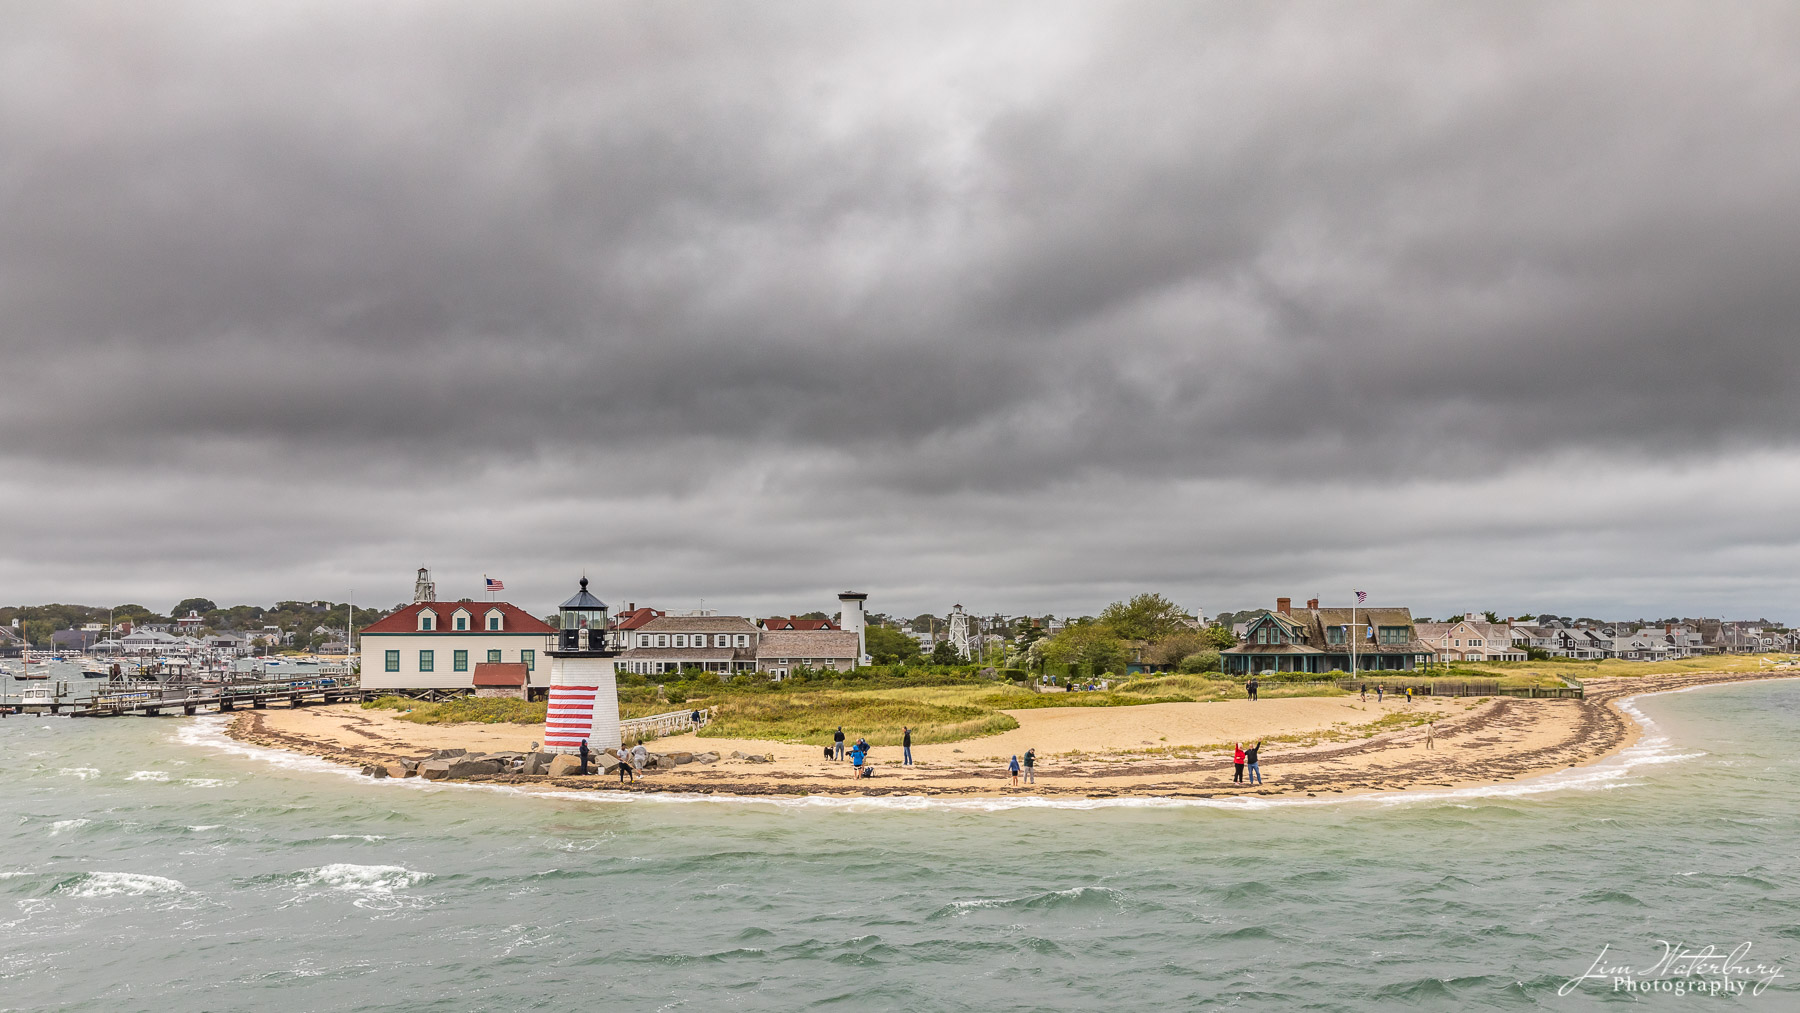 As the ferry rounds Brant Point Lighthouse, on a cold, windy and stormy September day, onlookers waive farewell ... until next...